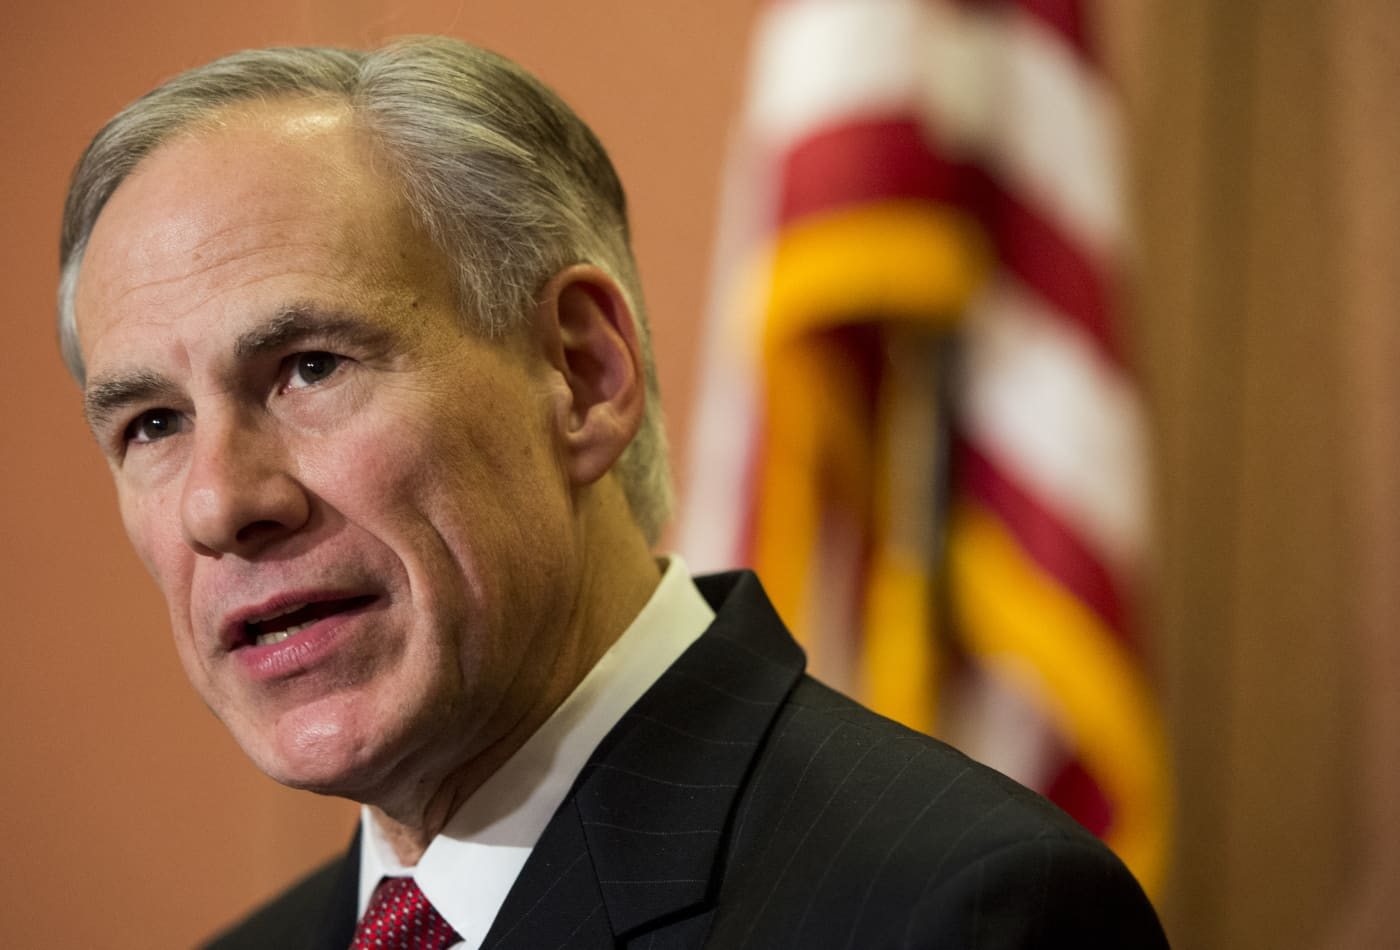 Gov. Abbott: It's going to take a little while to conquer Texas Covid-19 outbreak